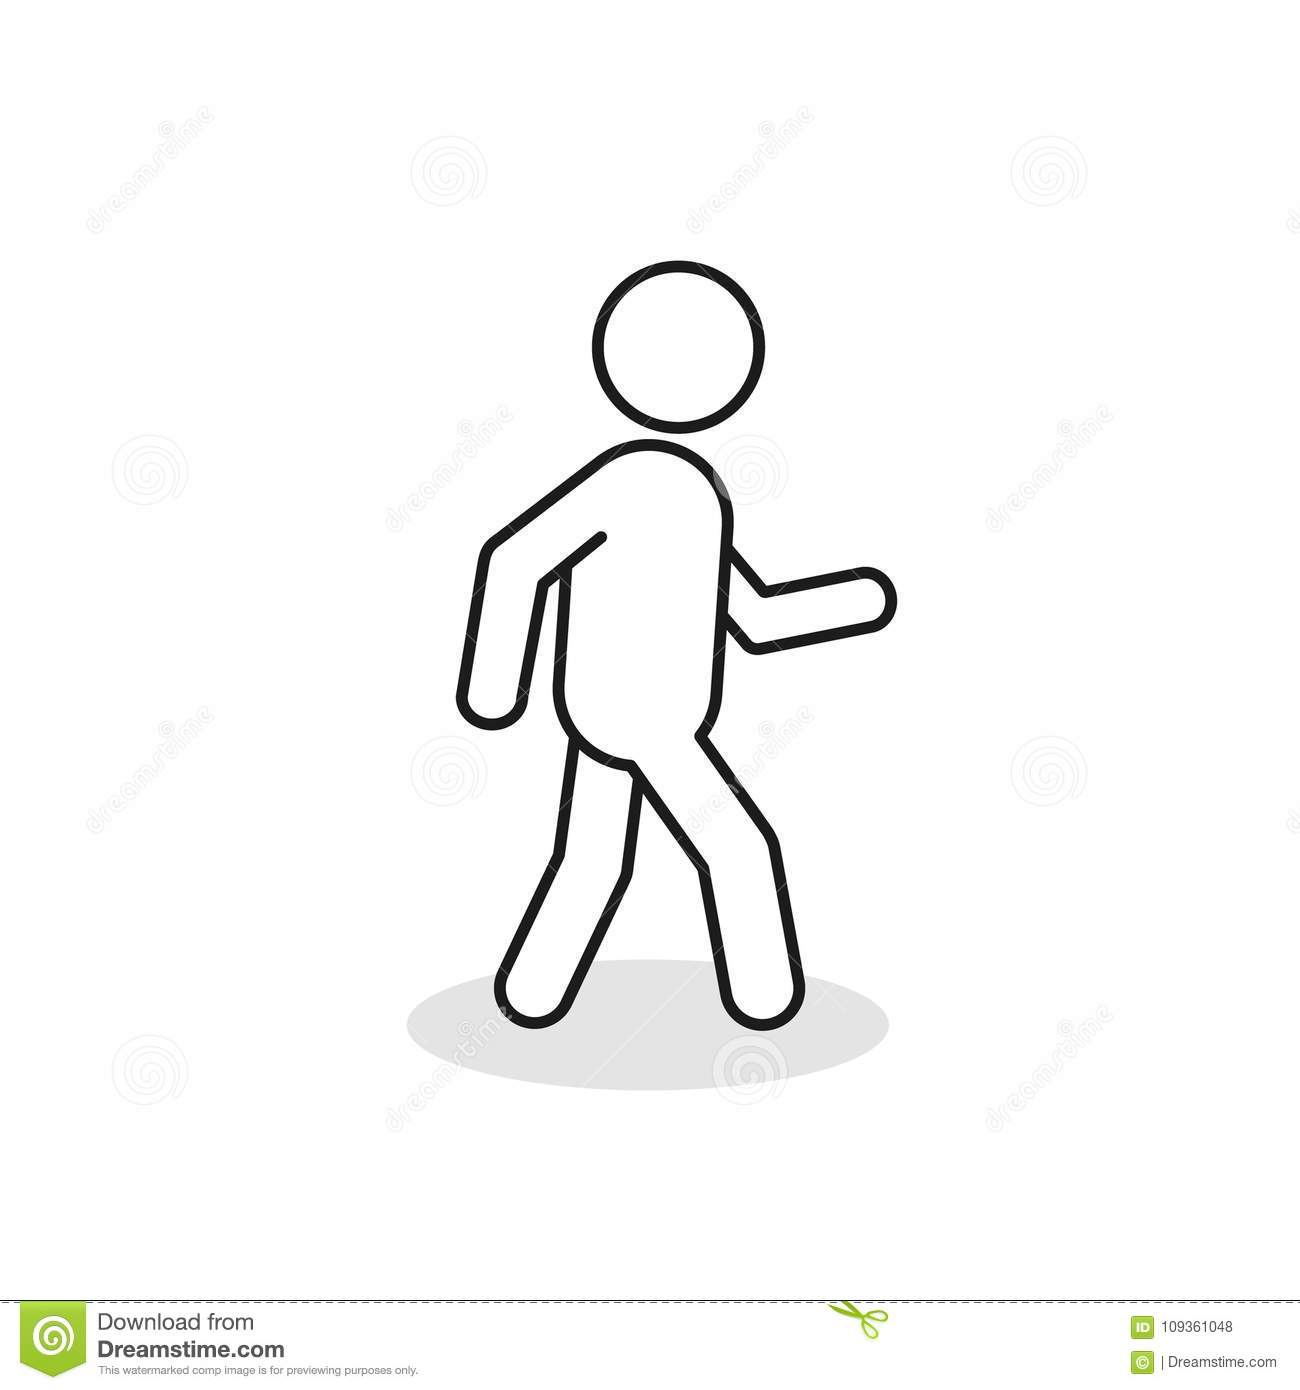 Pedestrian Silhouette Stock Illustrations 1 124